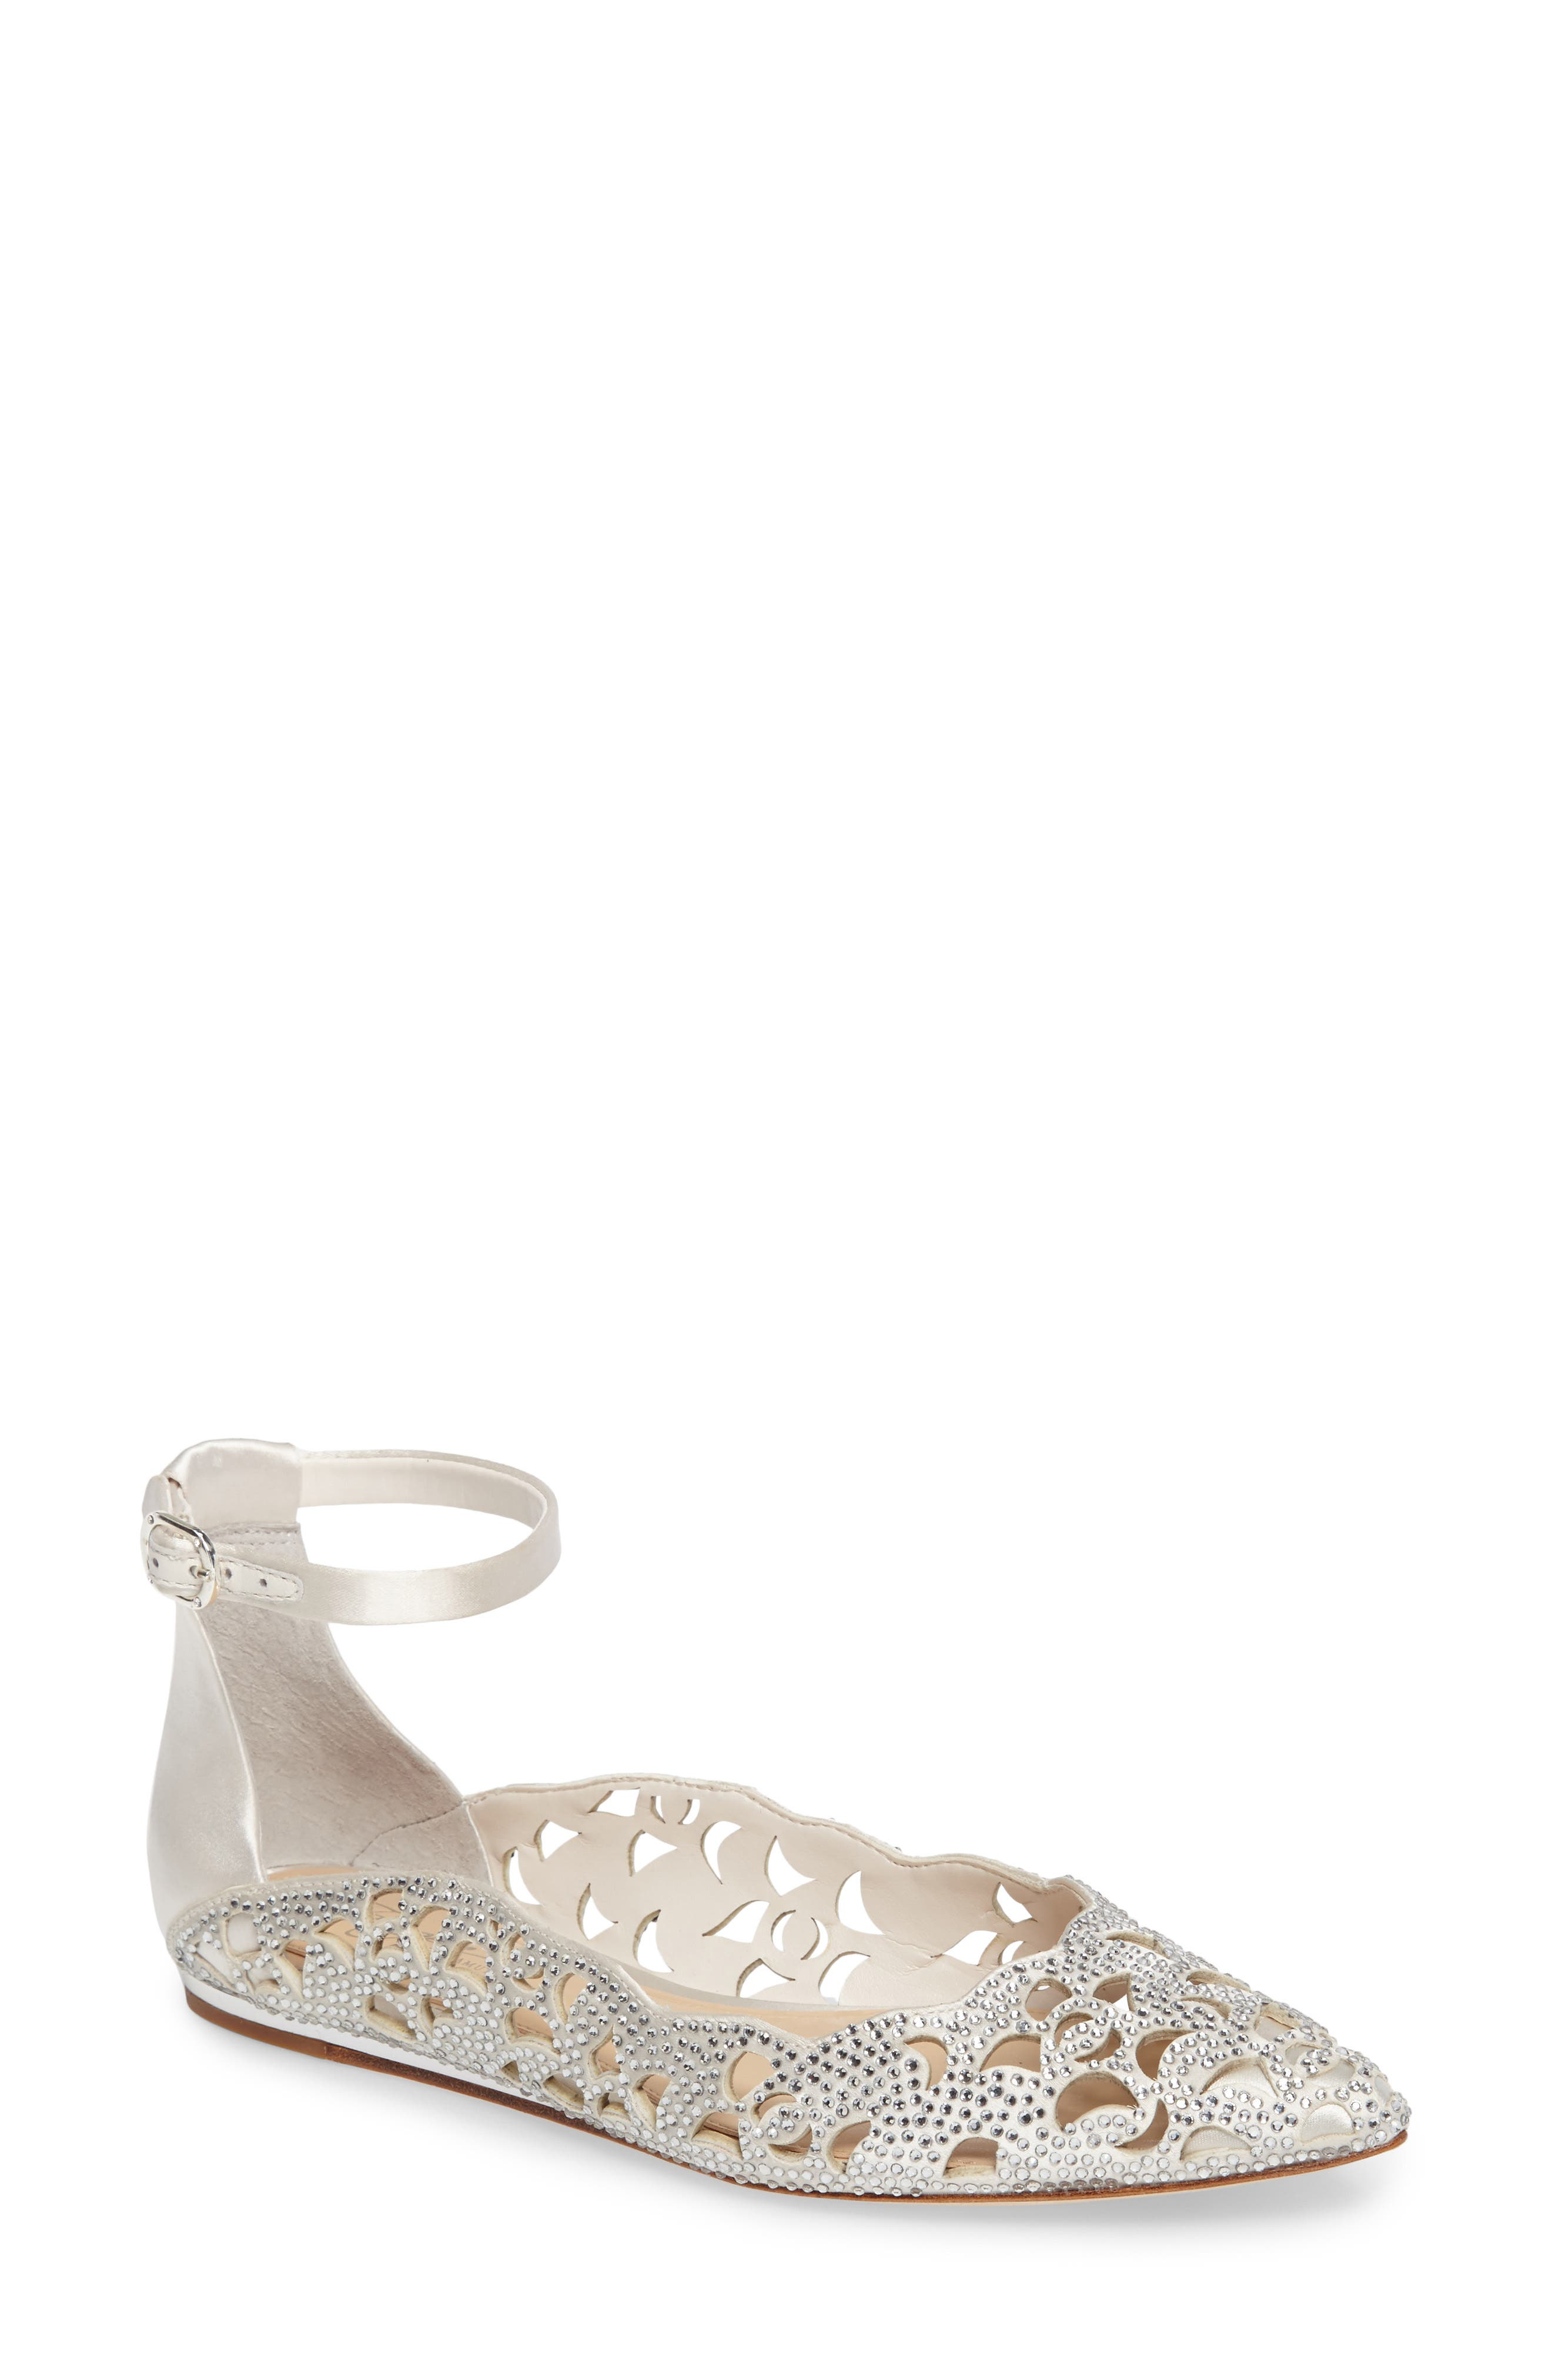 Garyn Ankle Strap Flat,                         Main,                         color, Ivory Satin